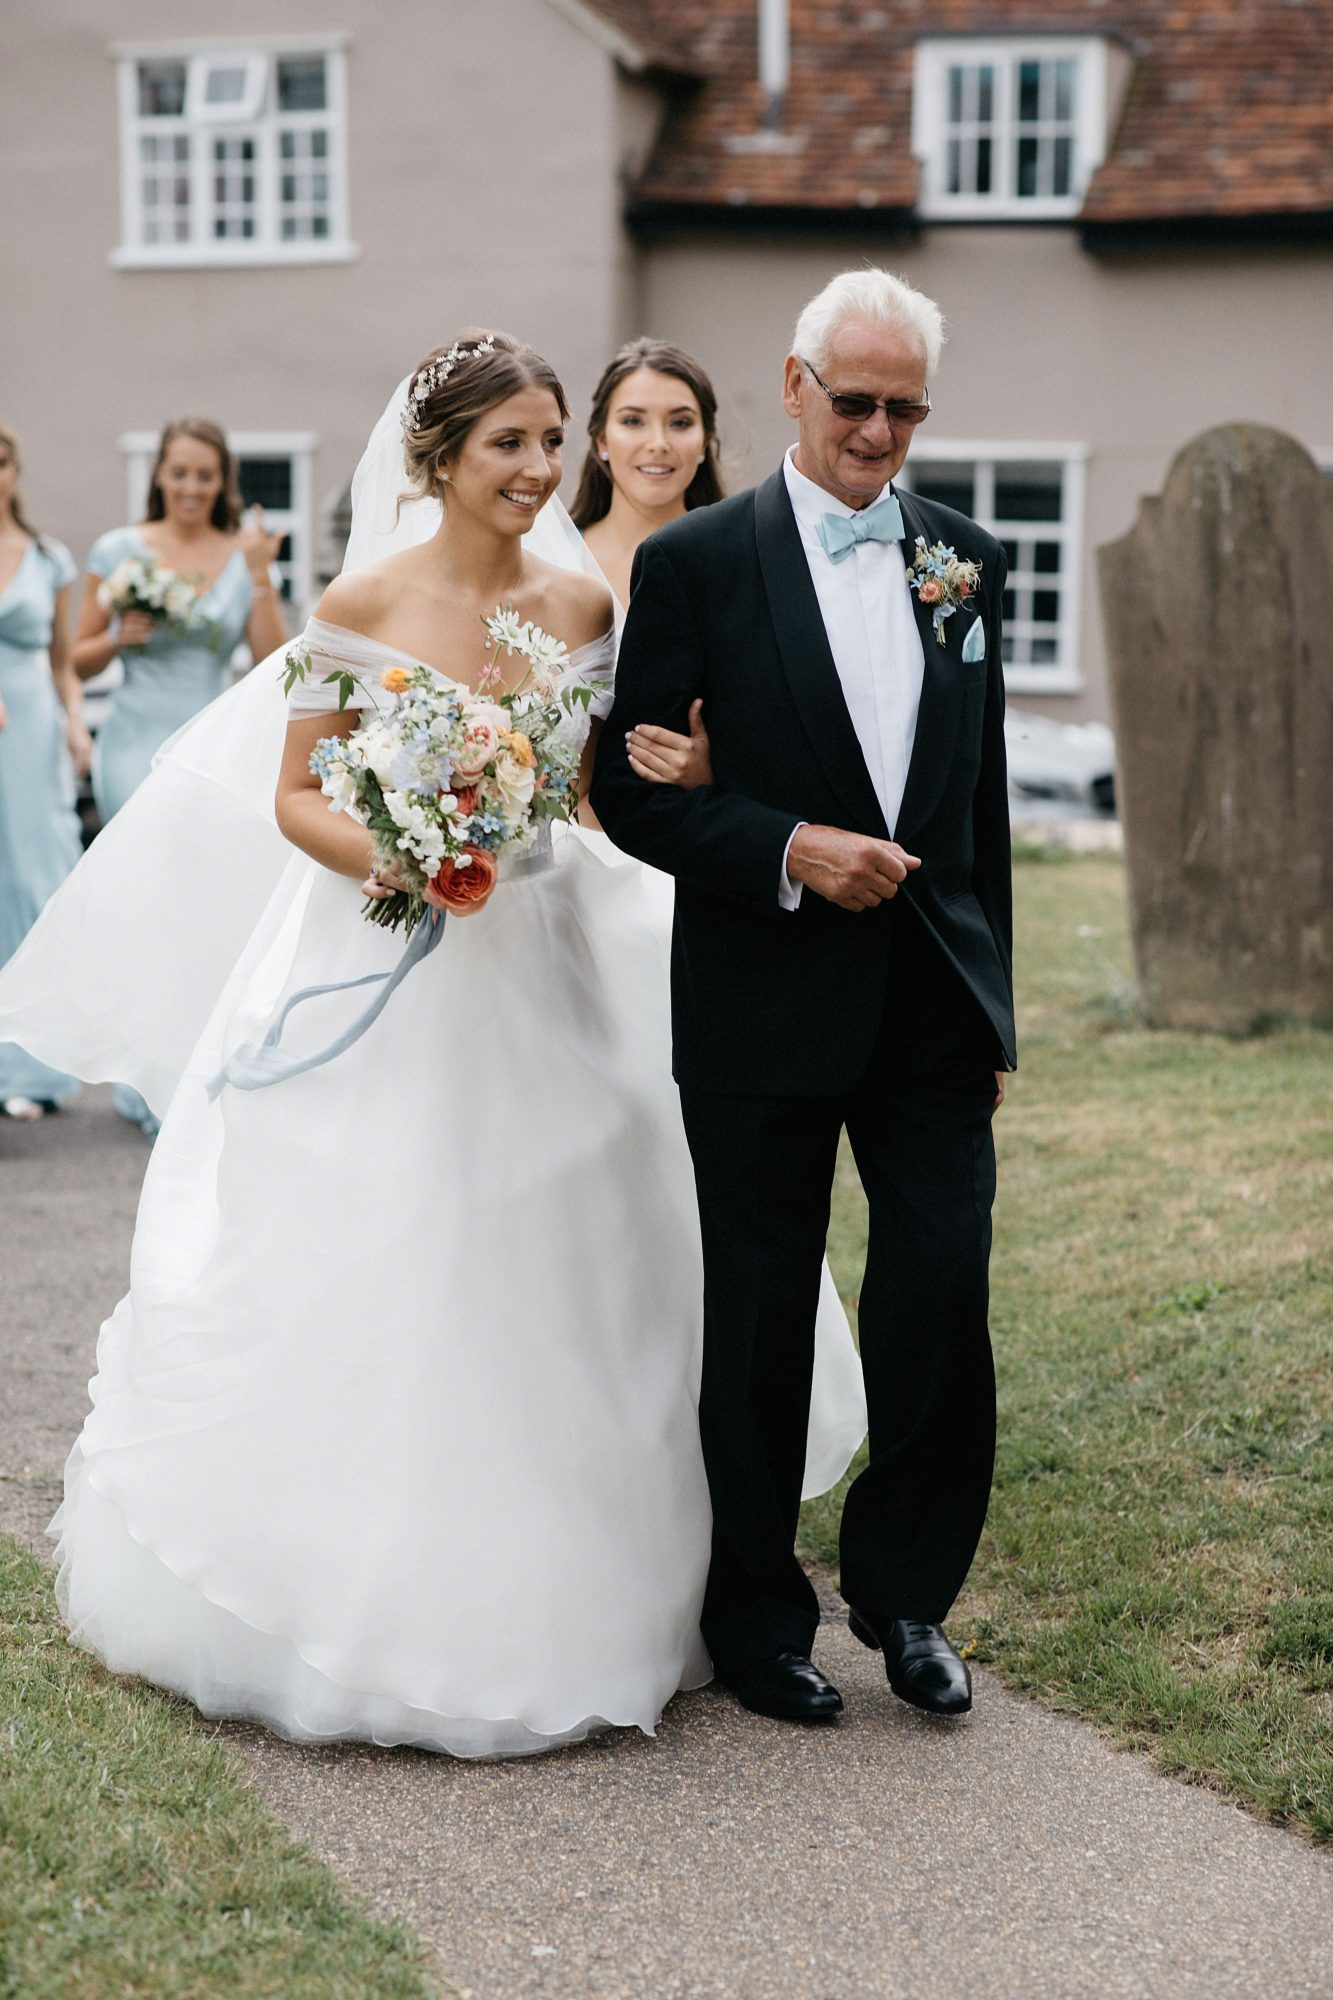 laurie lee wedding bride walking down the aisle with father